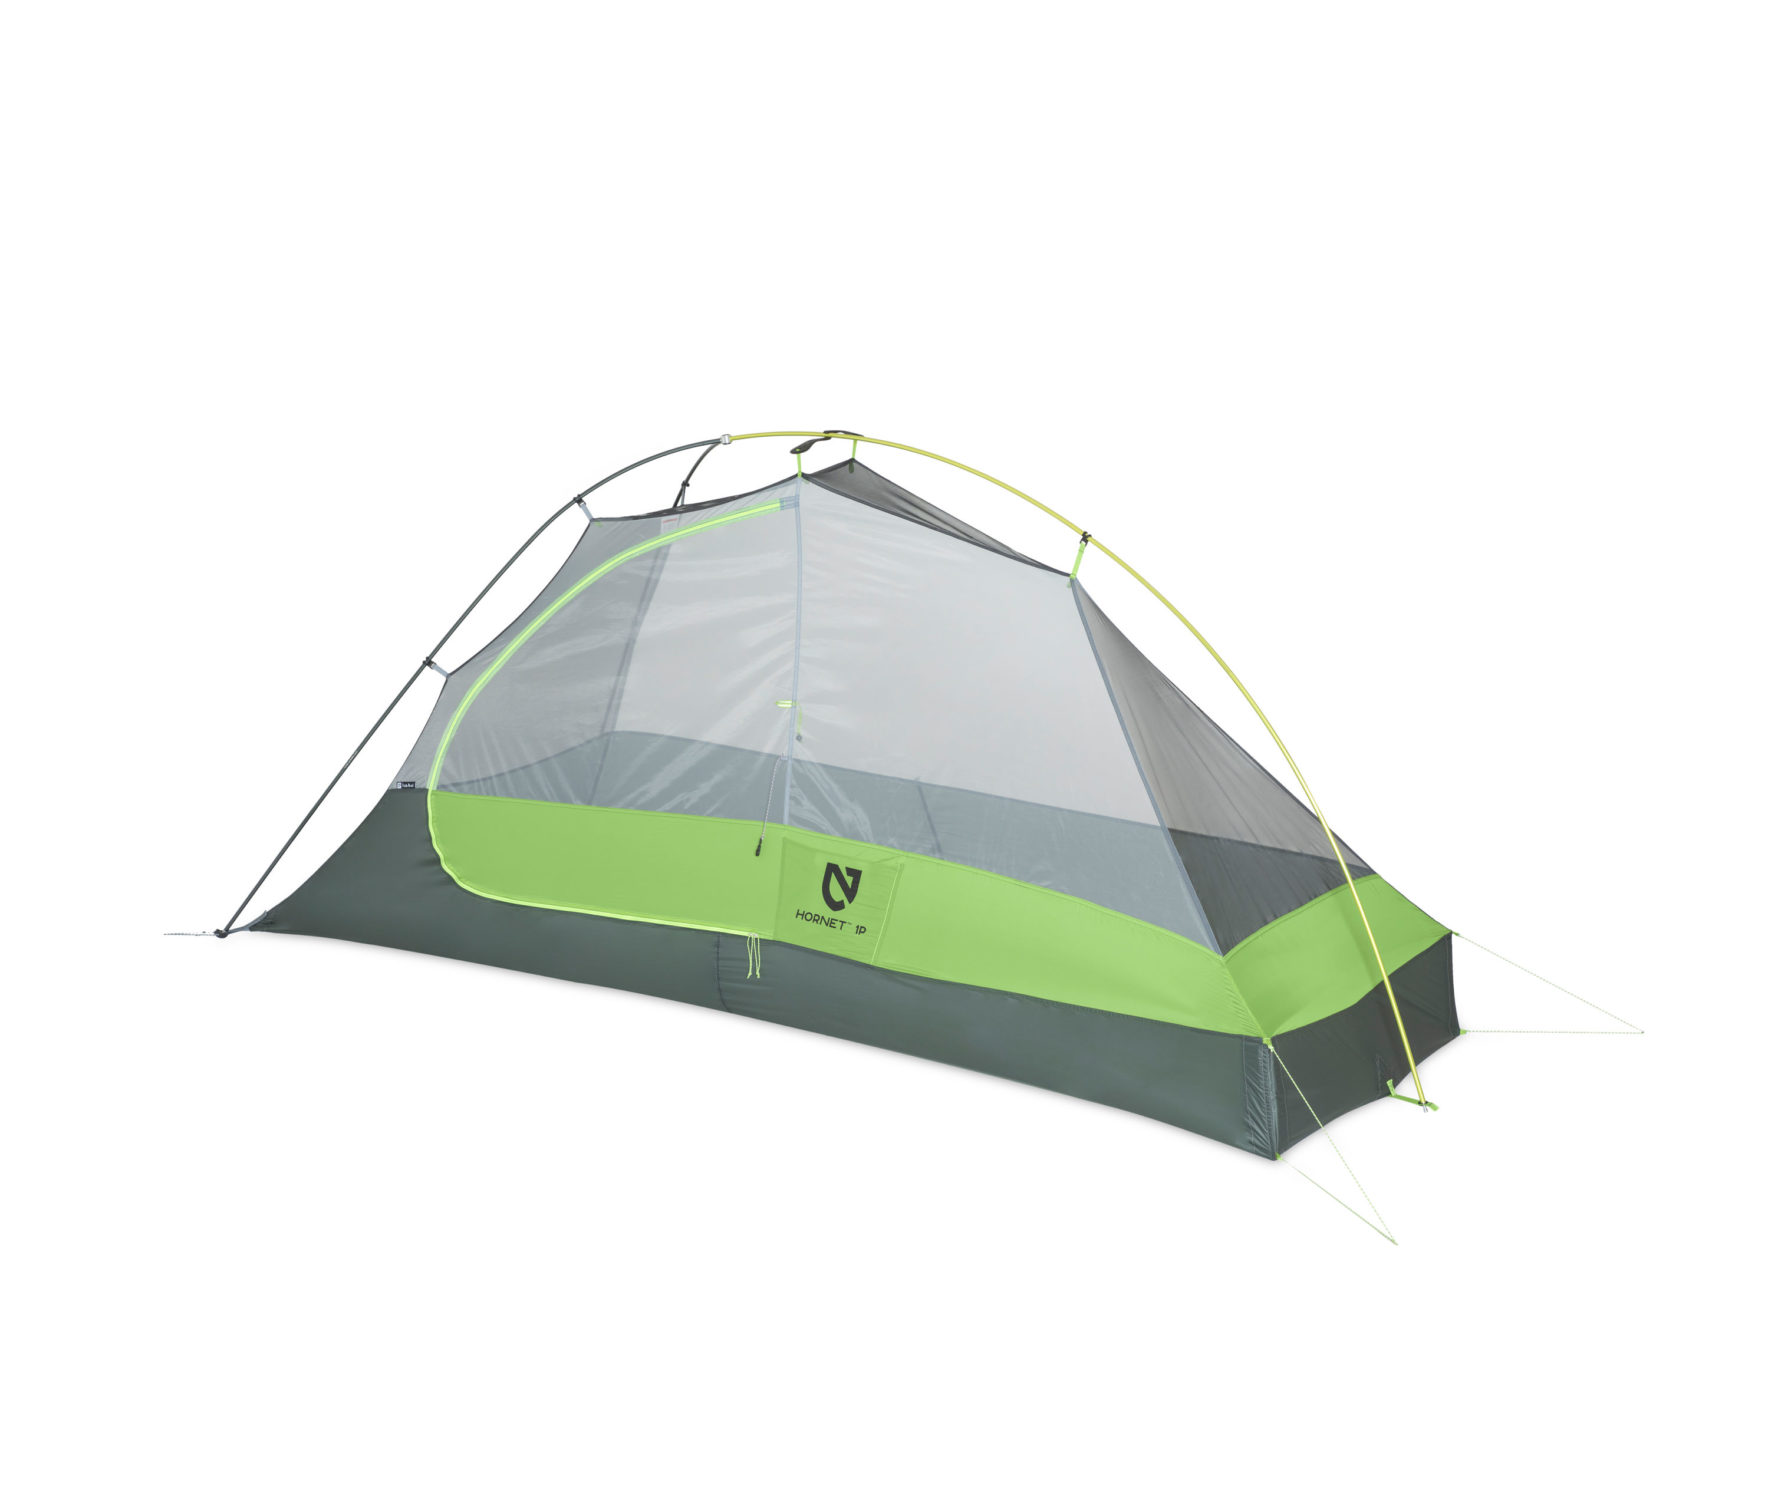 Nemo Equipment Hornet Ultralight Backpacking Tent 1 Person Backpacking Tents Campsaver Com